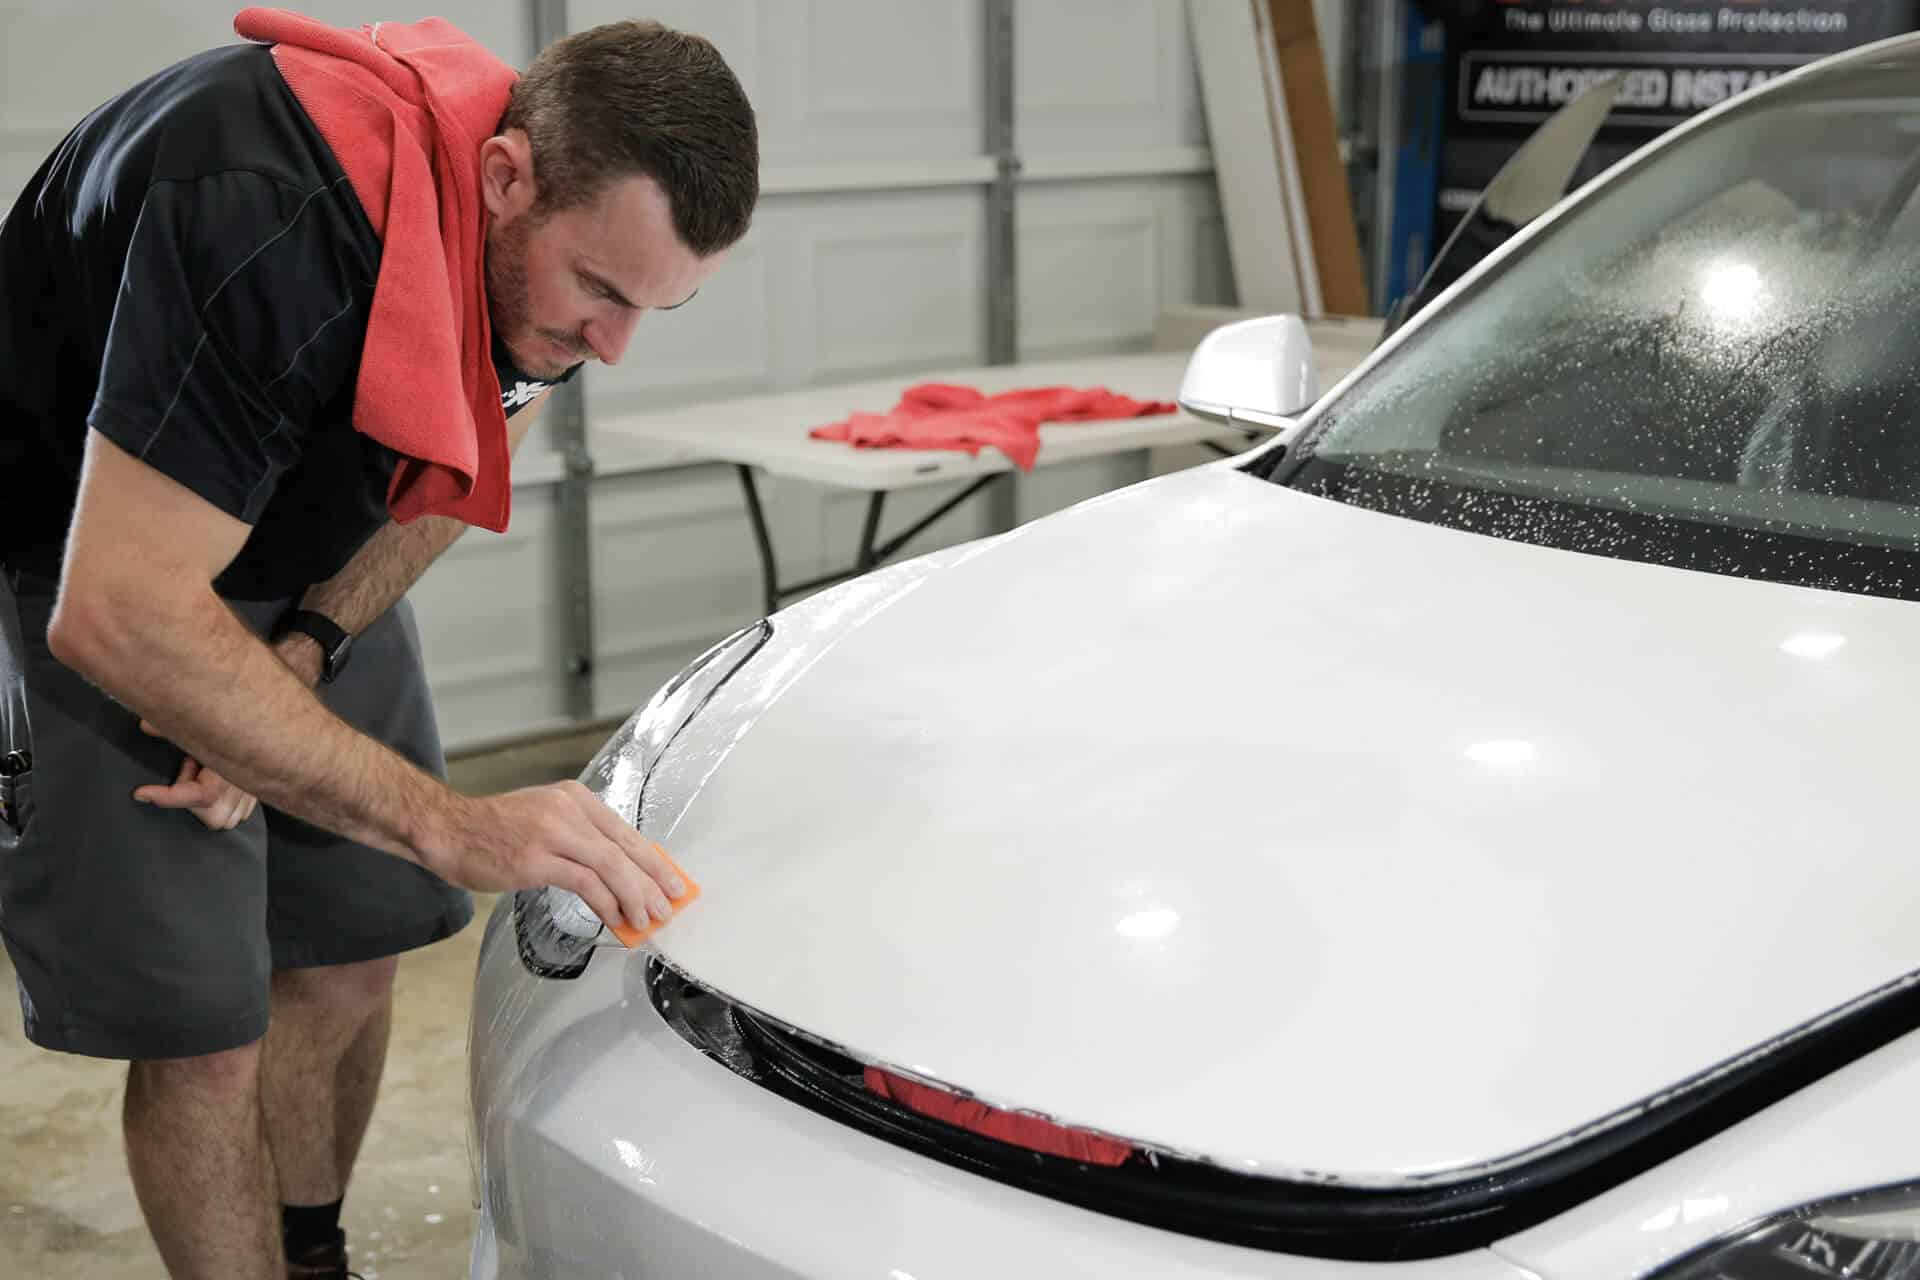 World's Best Paint Protection Installer Tyler O'Hara removing badge